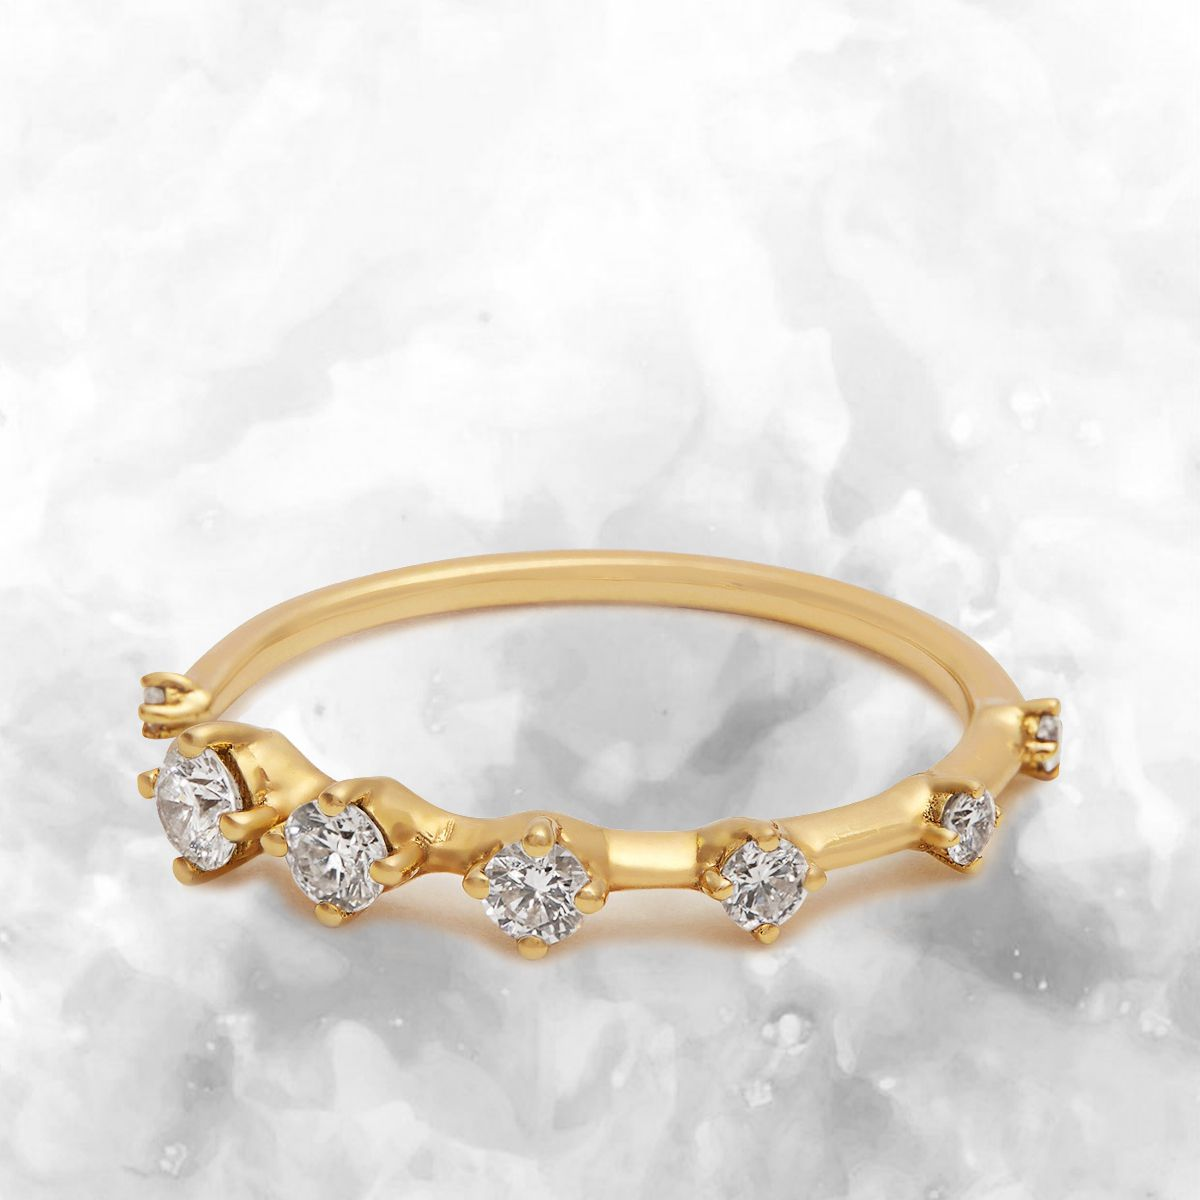 a1cda8409f6ea The Best Valentine's Day Jewelry Gifts for Every Budget